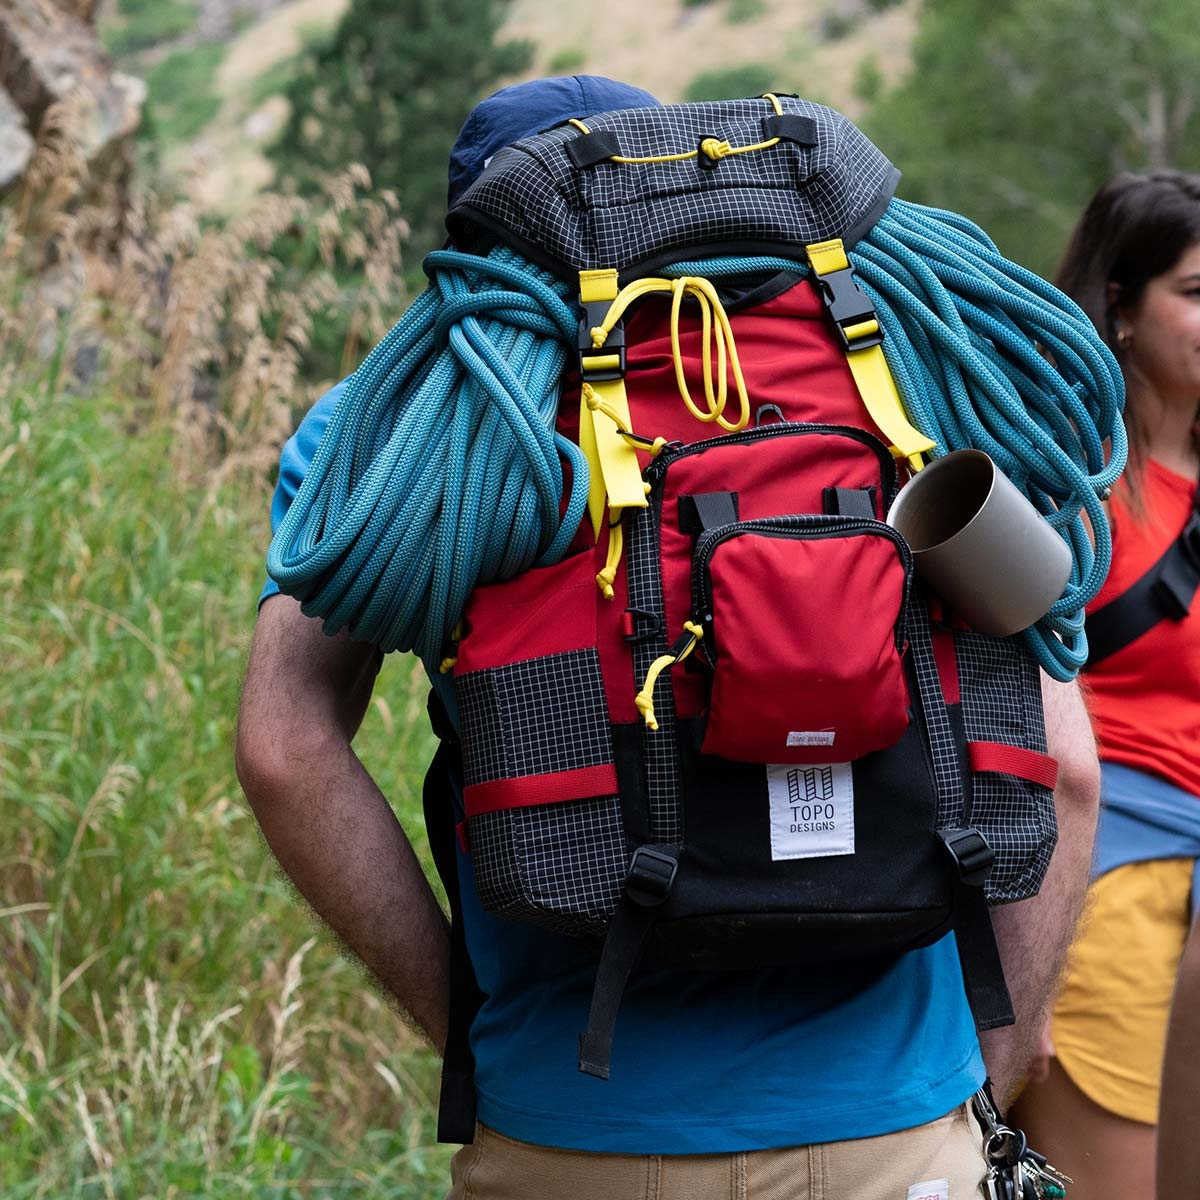 Topo Designs Topo Designs Subalpine Pack, combines the functionality of classic hiking packs with unmistakably Topo Designs styling